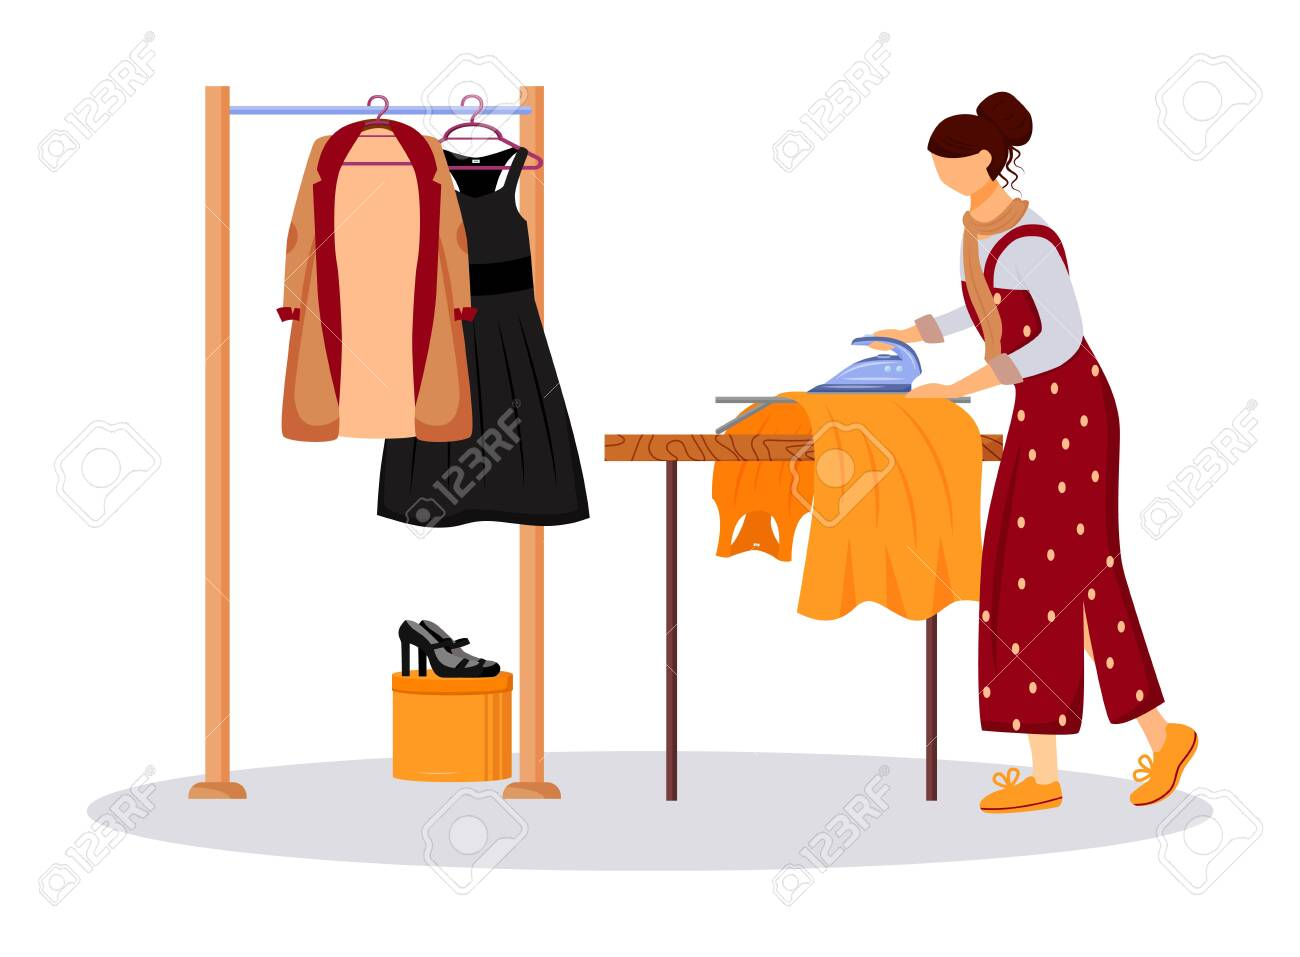 Ironing Dresses Jackets Flat Color Vector Illustration Preparing Royalty Free Cliparts Vectors And Stock Illustration Image 137688122